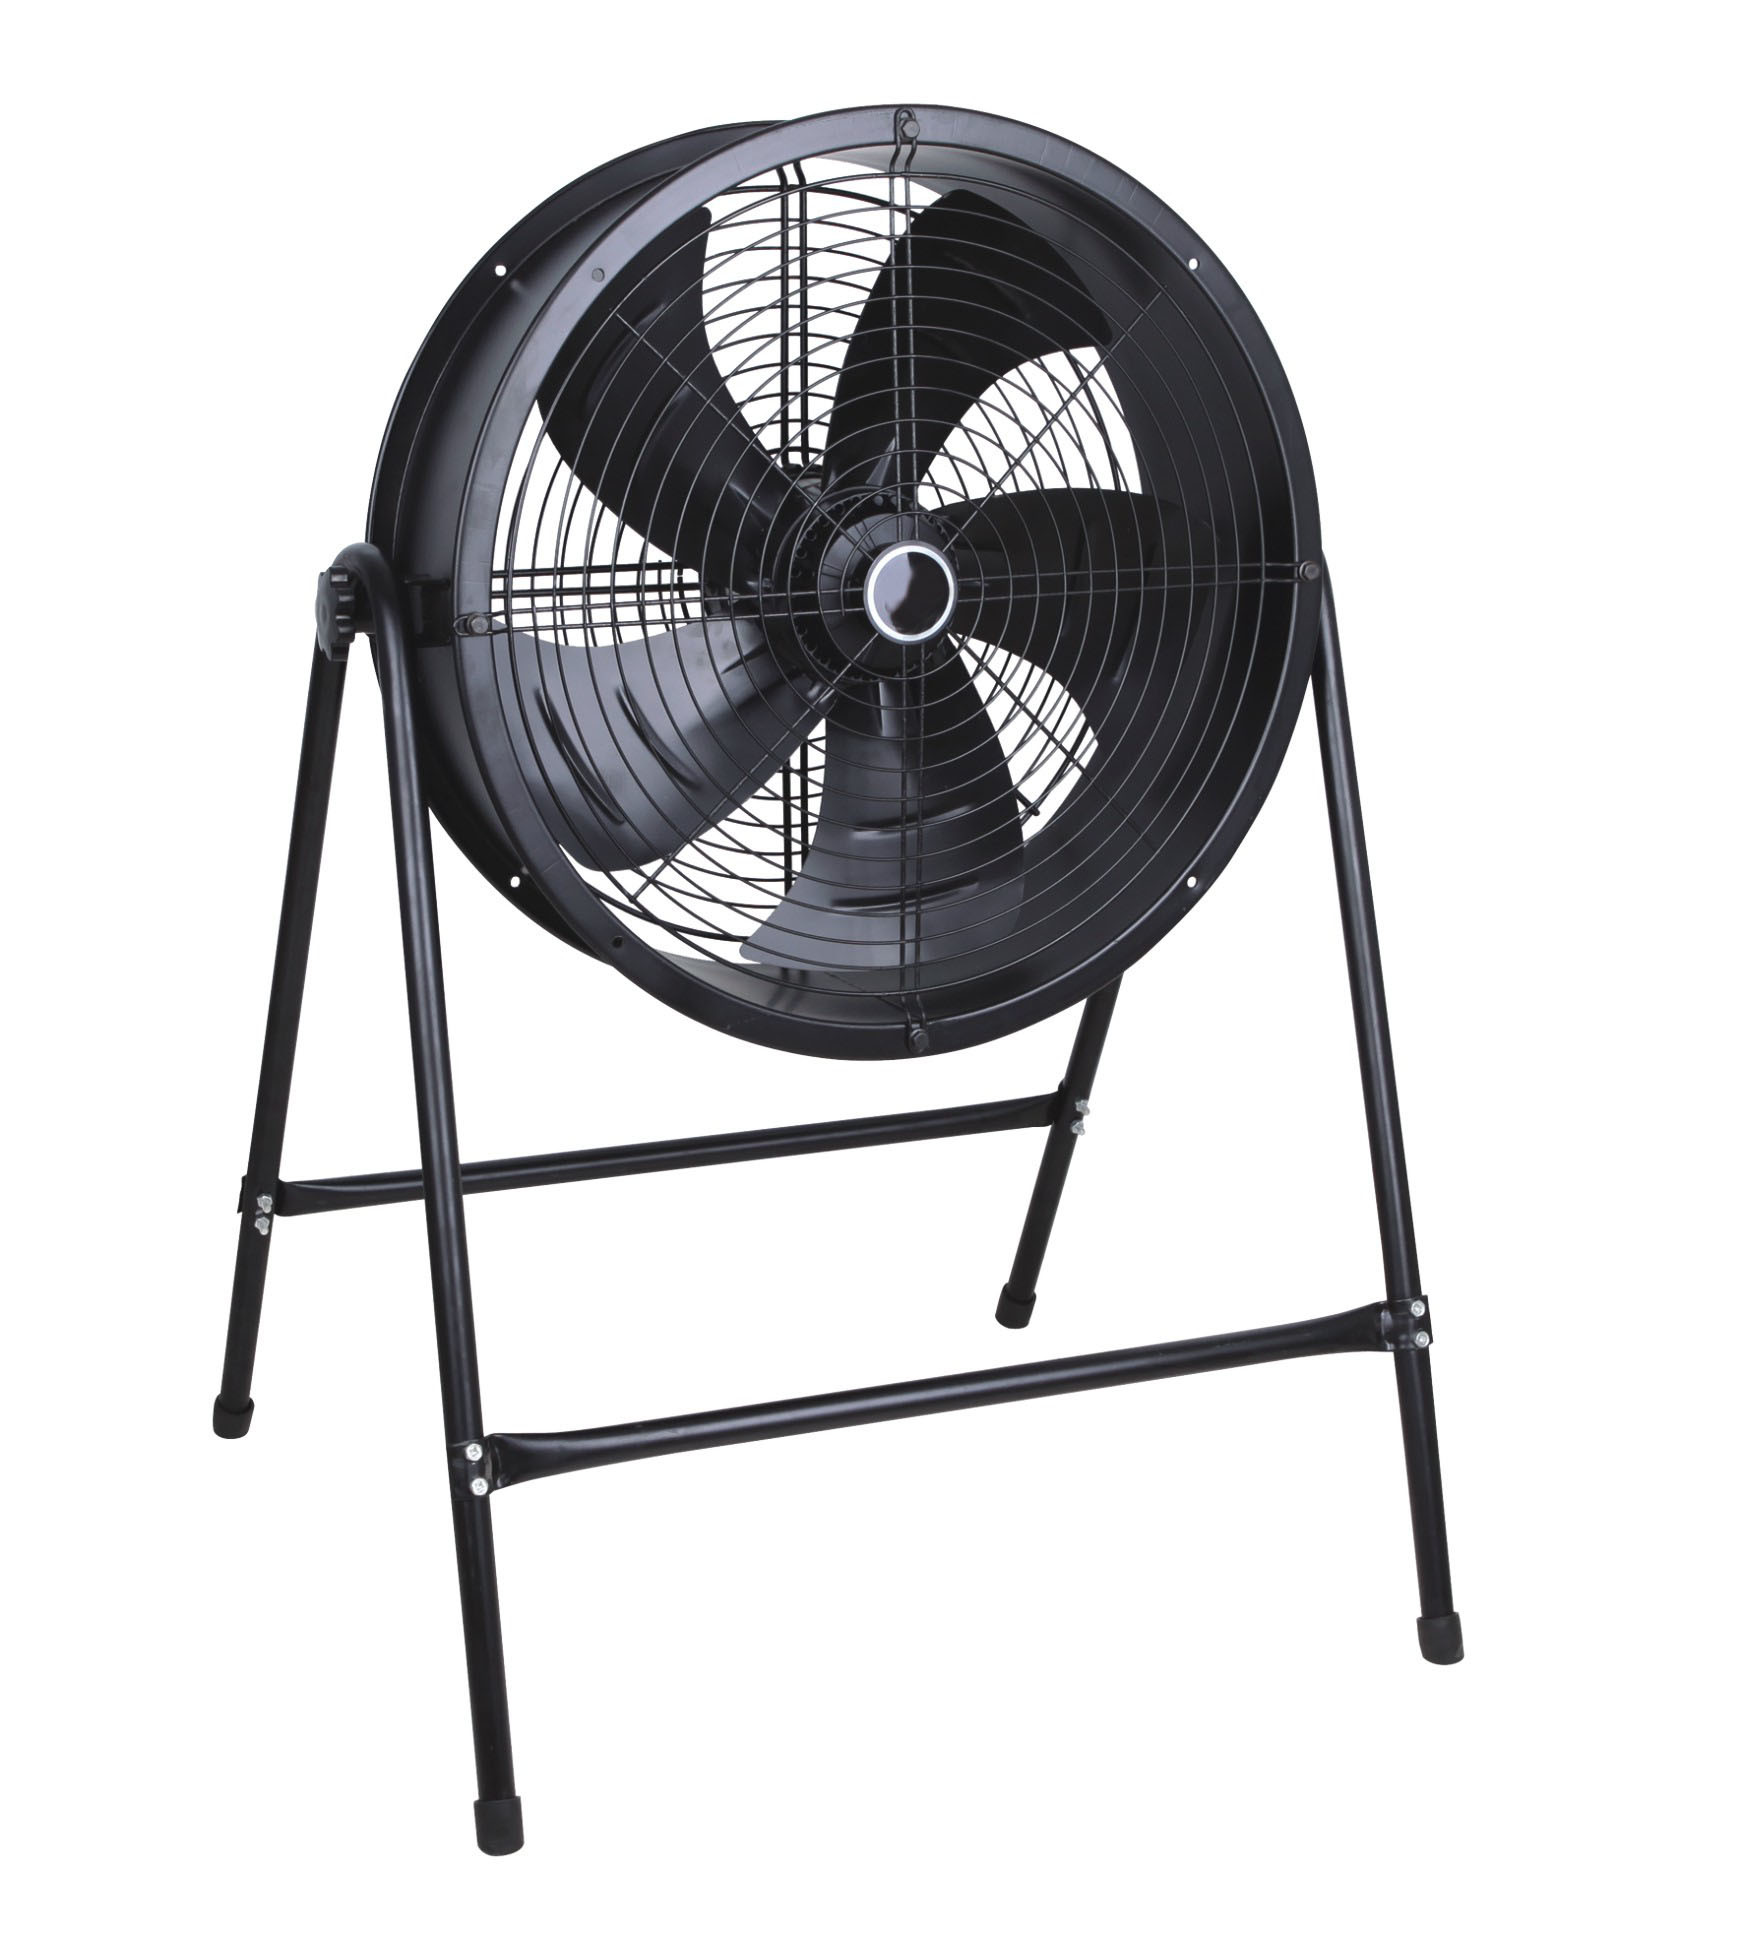 Axial Duct Fans : China axial fan ventilation duct ventilator photos